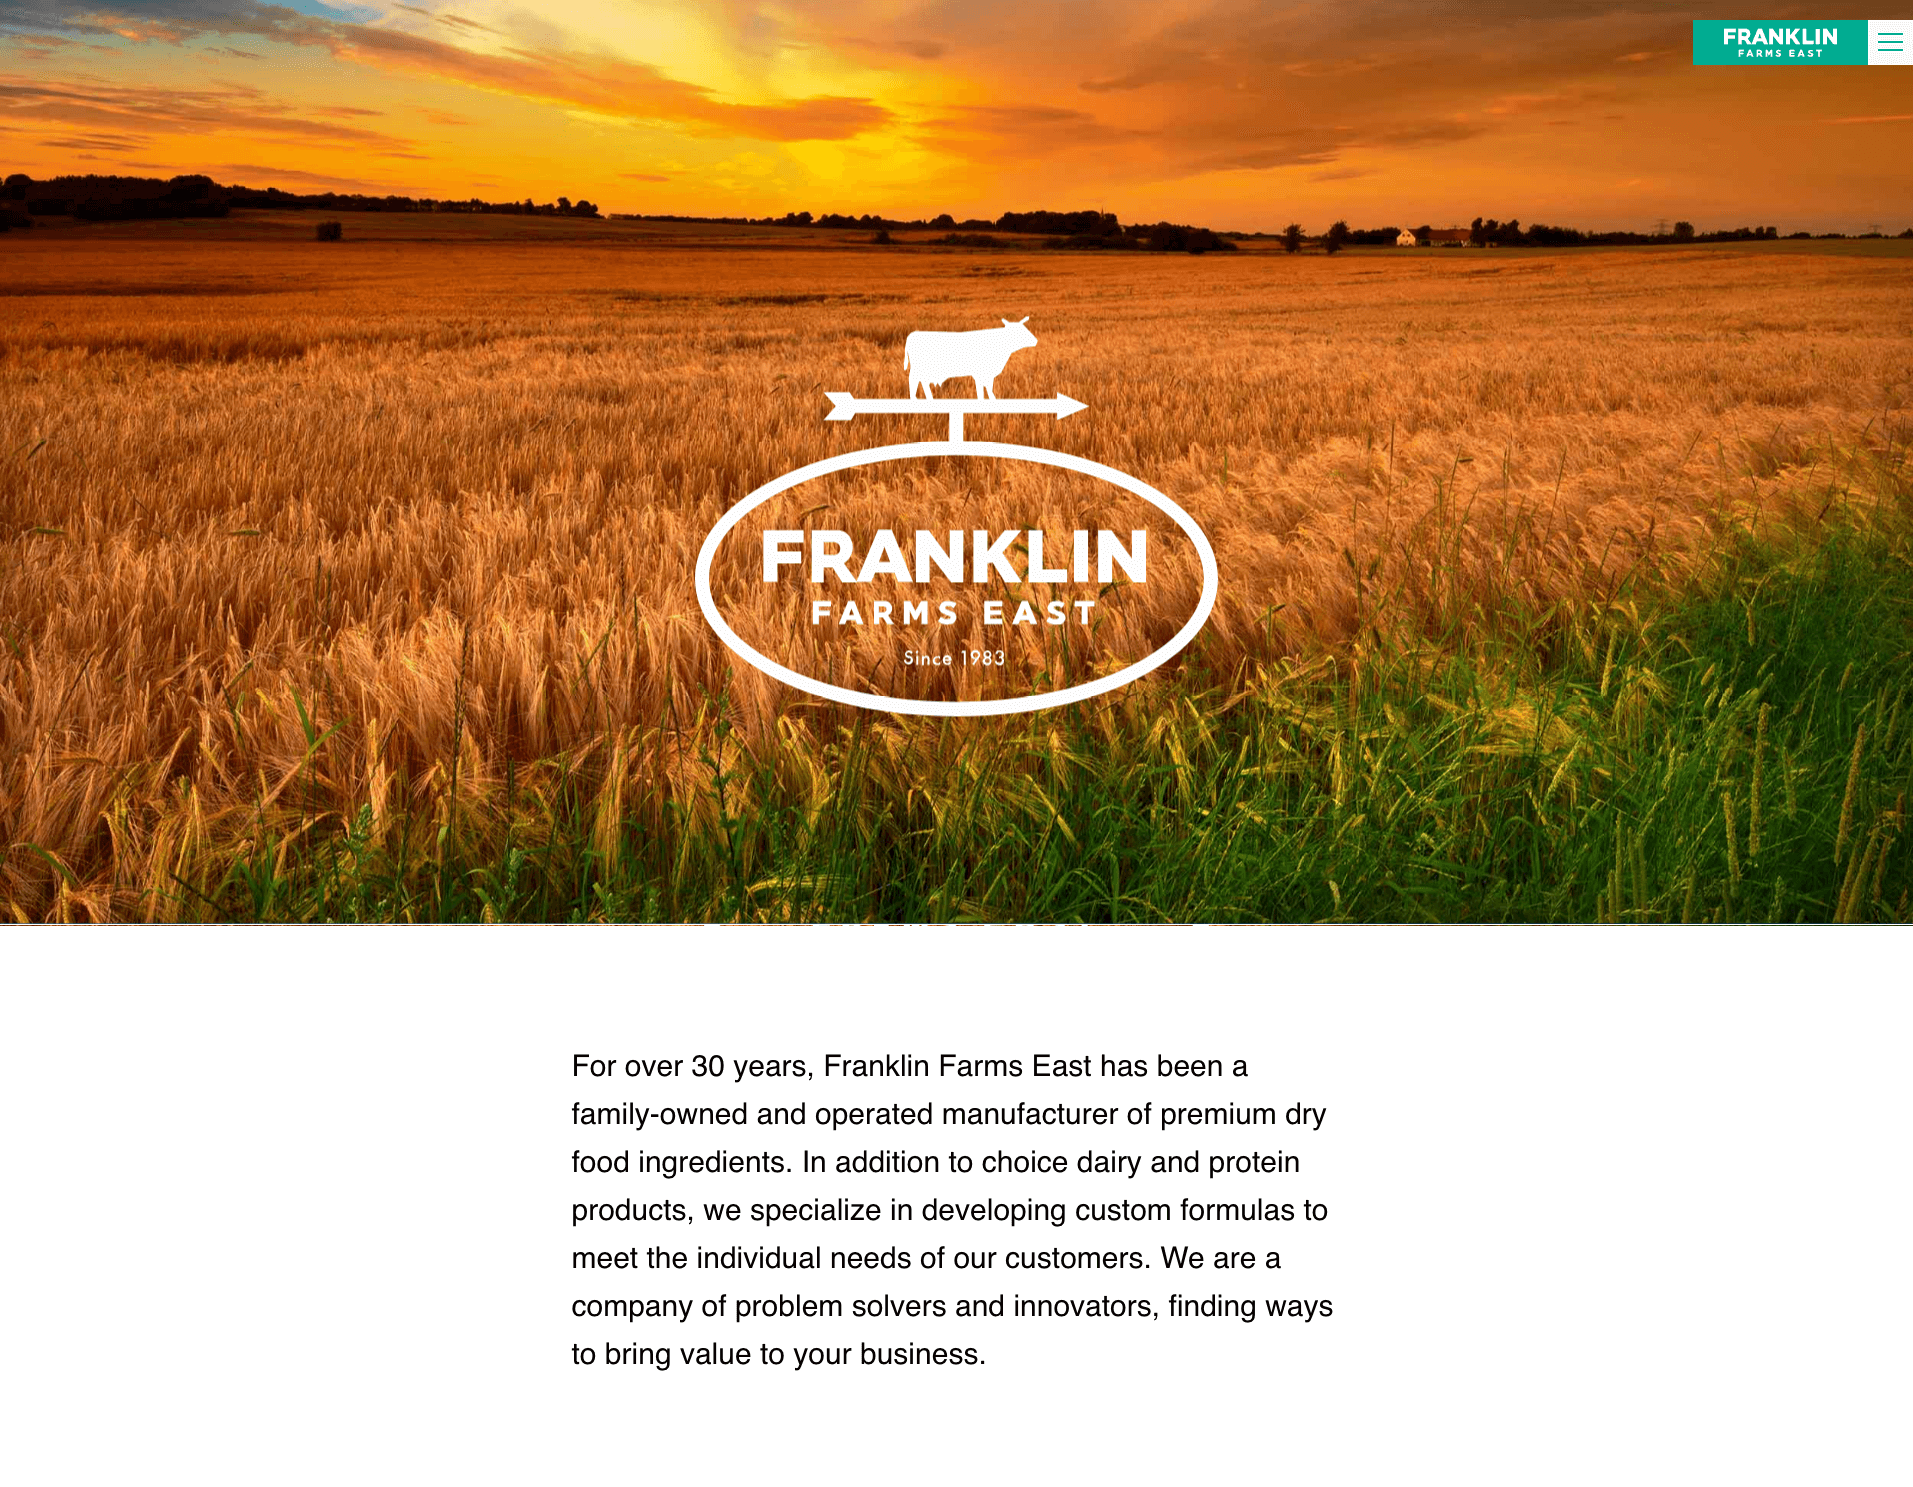 franklin-farms-east-custom-responsive-one-page-html-landing-desktop-1.png